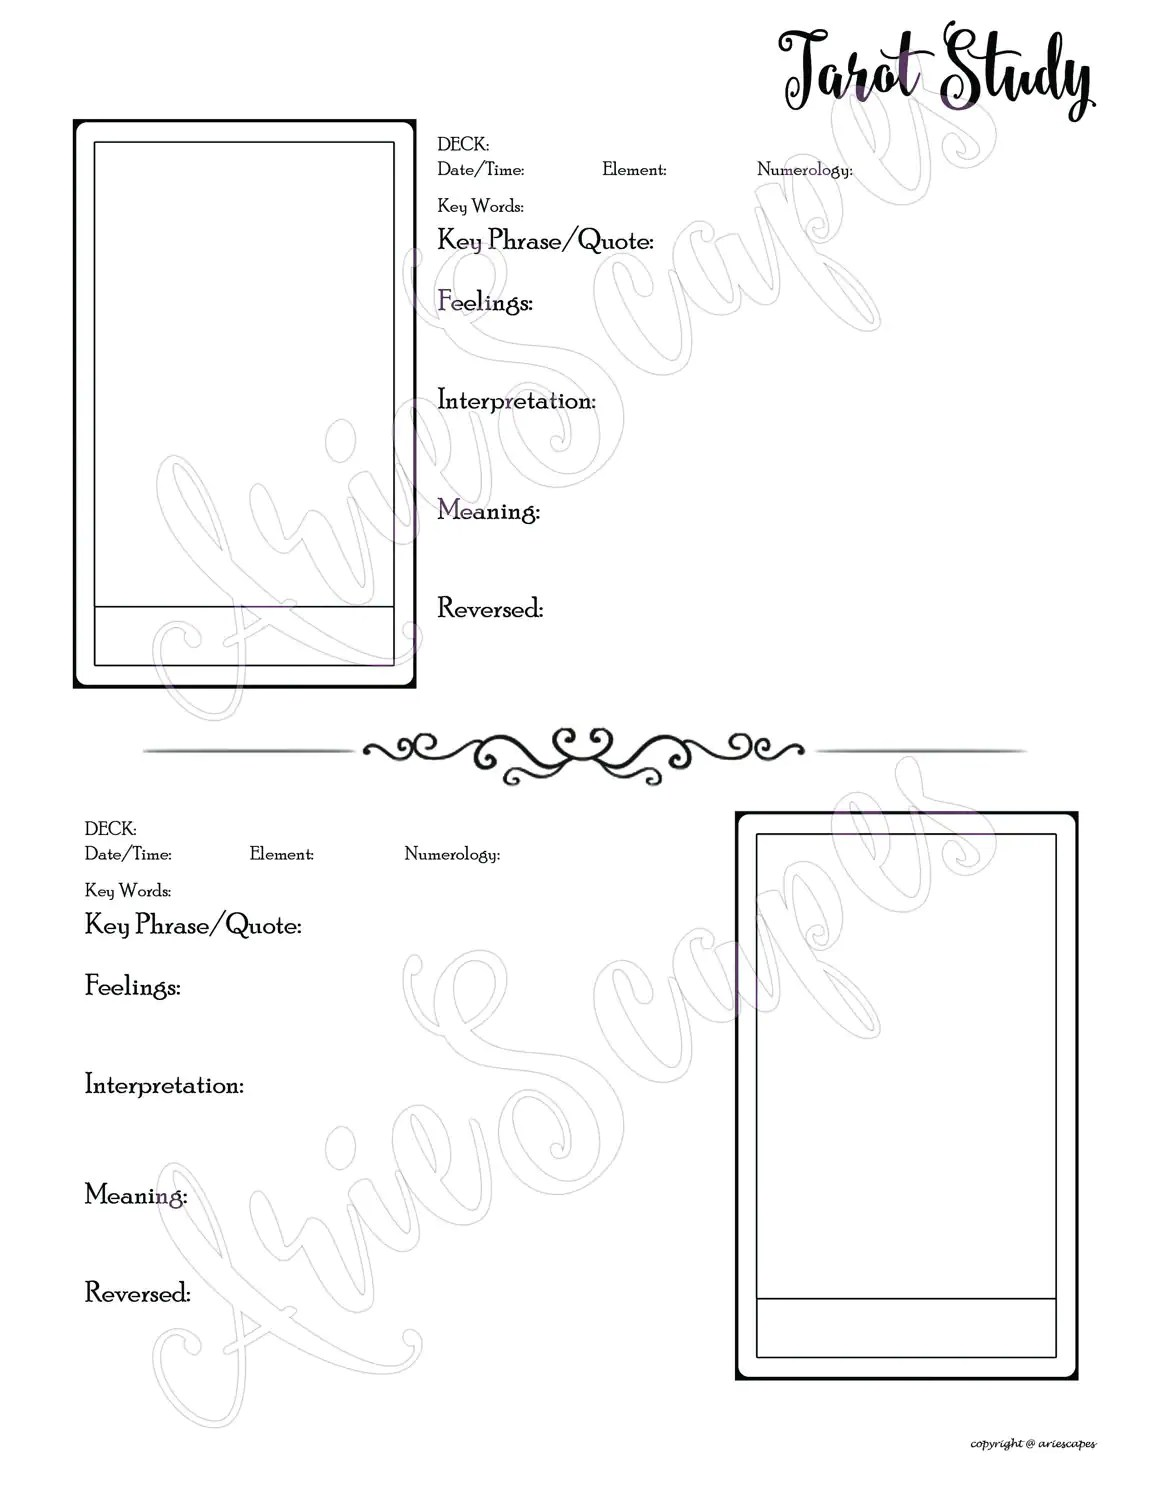 Tarot Study Template Only Single Page